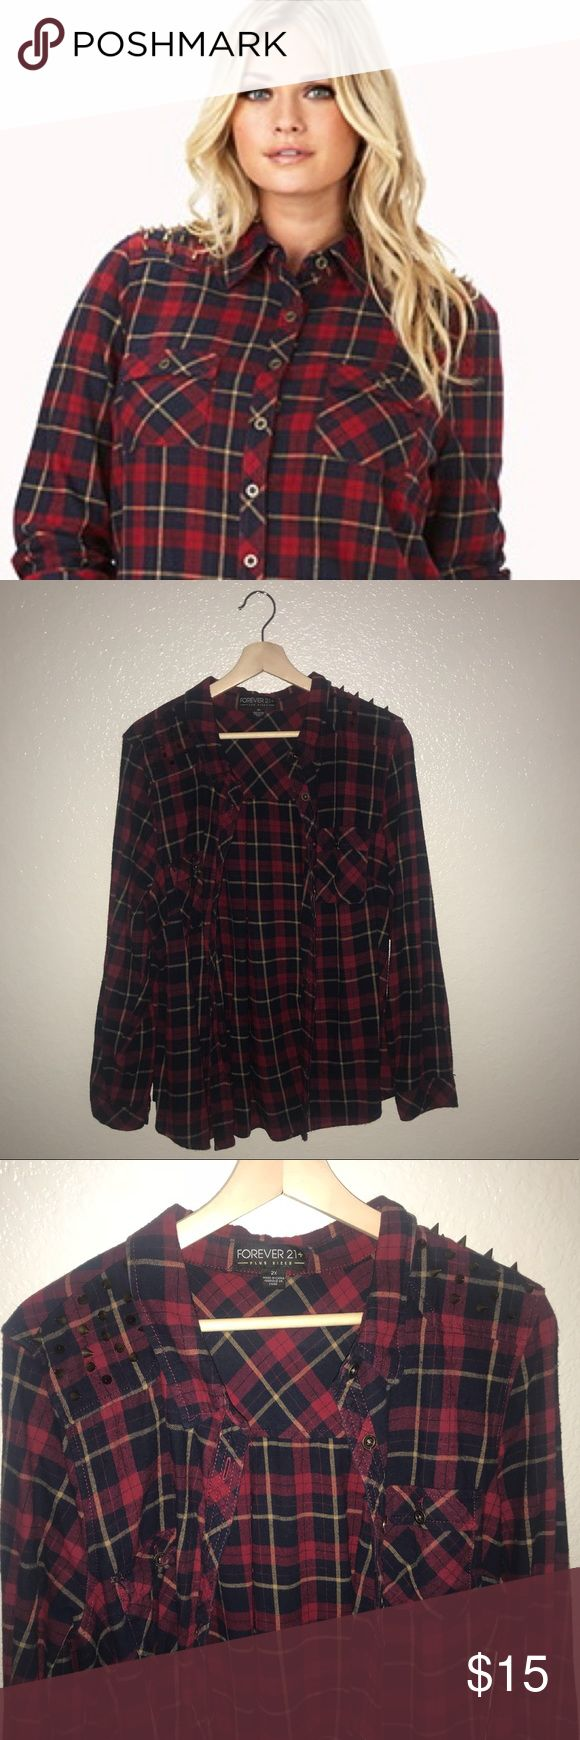 Gangster flannel shirts  The  best My Posh Closet images on Pinterest